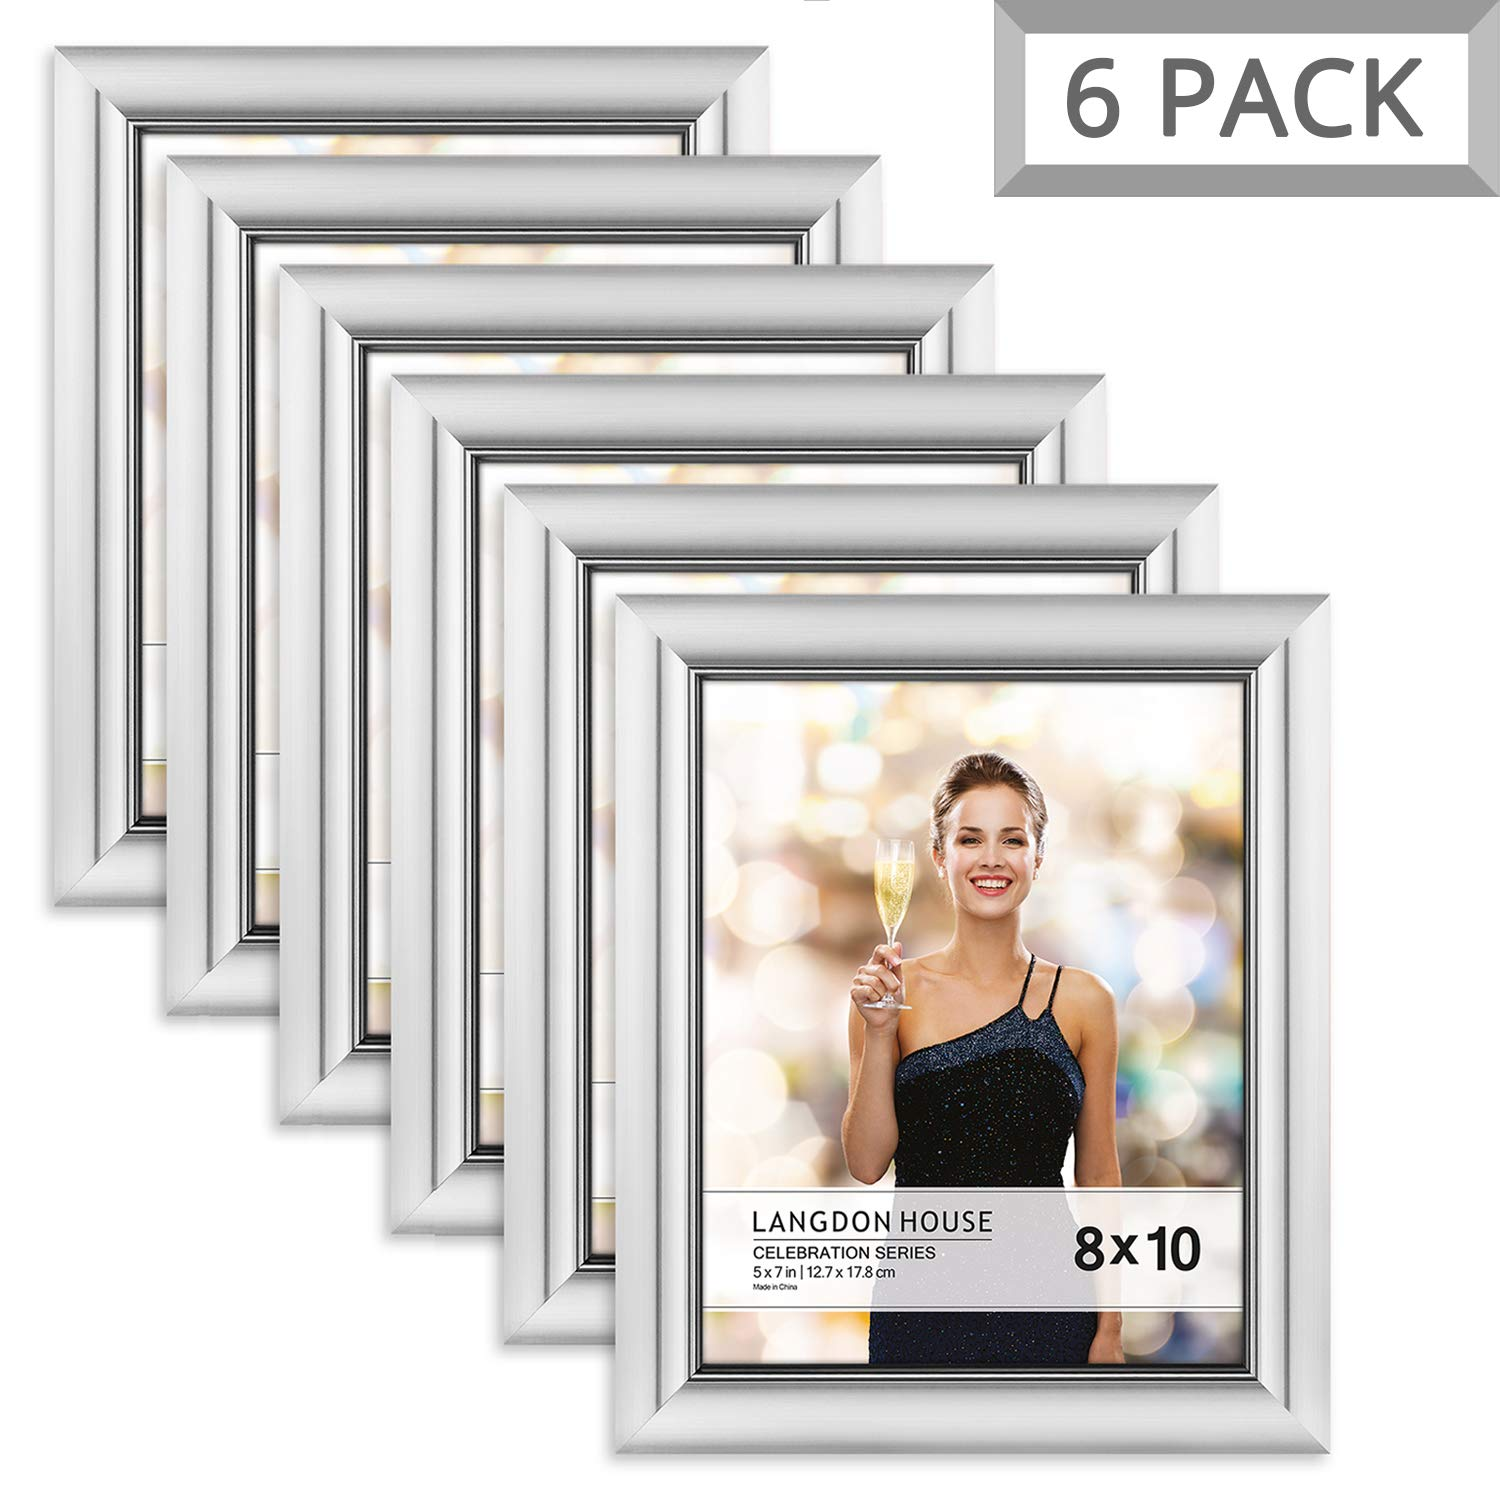 Langdon House 8x10 Picture Frame (6 Pack, Silver), Silver Photo Frame 8 x 10, Wall Mount or Table Top, Set of 6 Celebration Collection